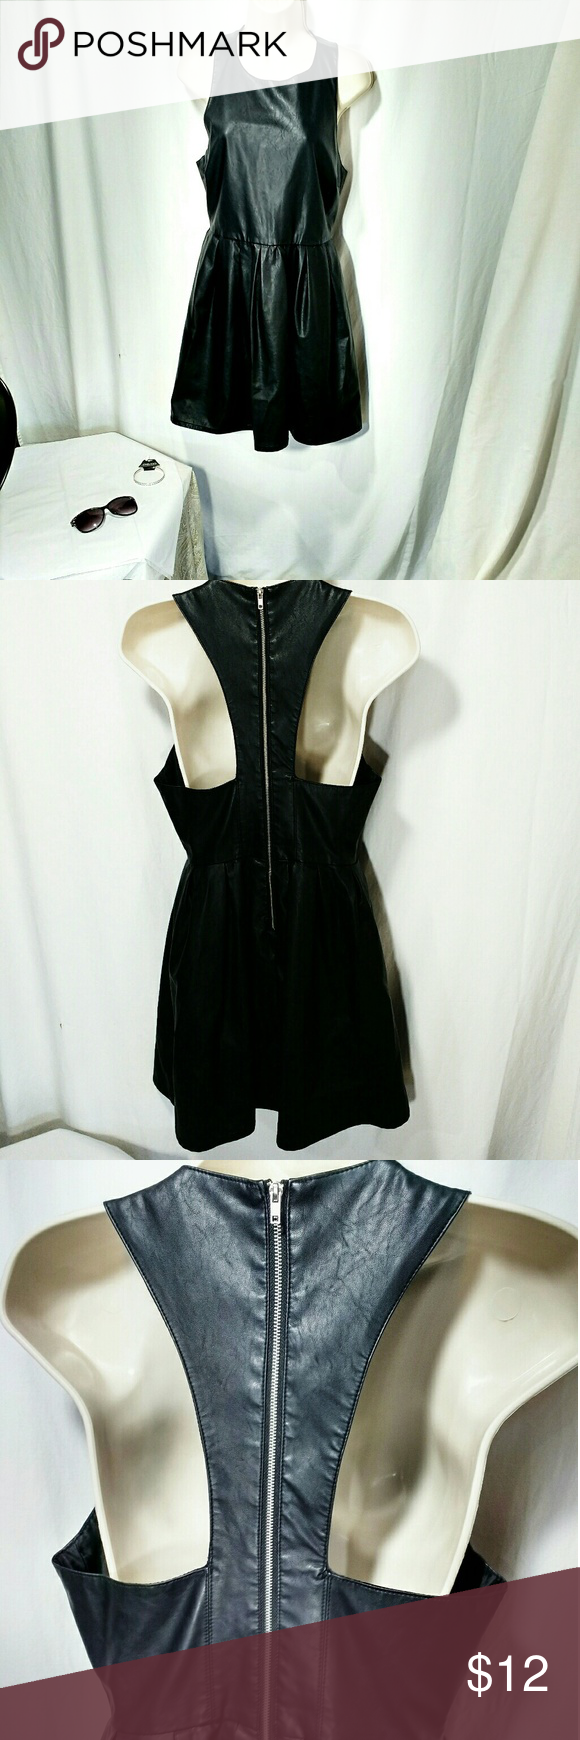 Forever 21 Black Racerback Dress Skater Style Dress Casual Outfits Faux Leather Dress [ 1740 x 580 Pixel ]